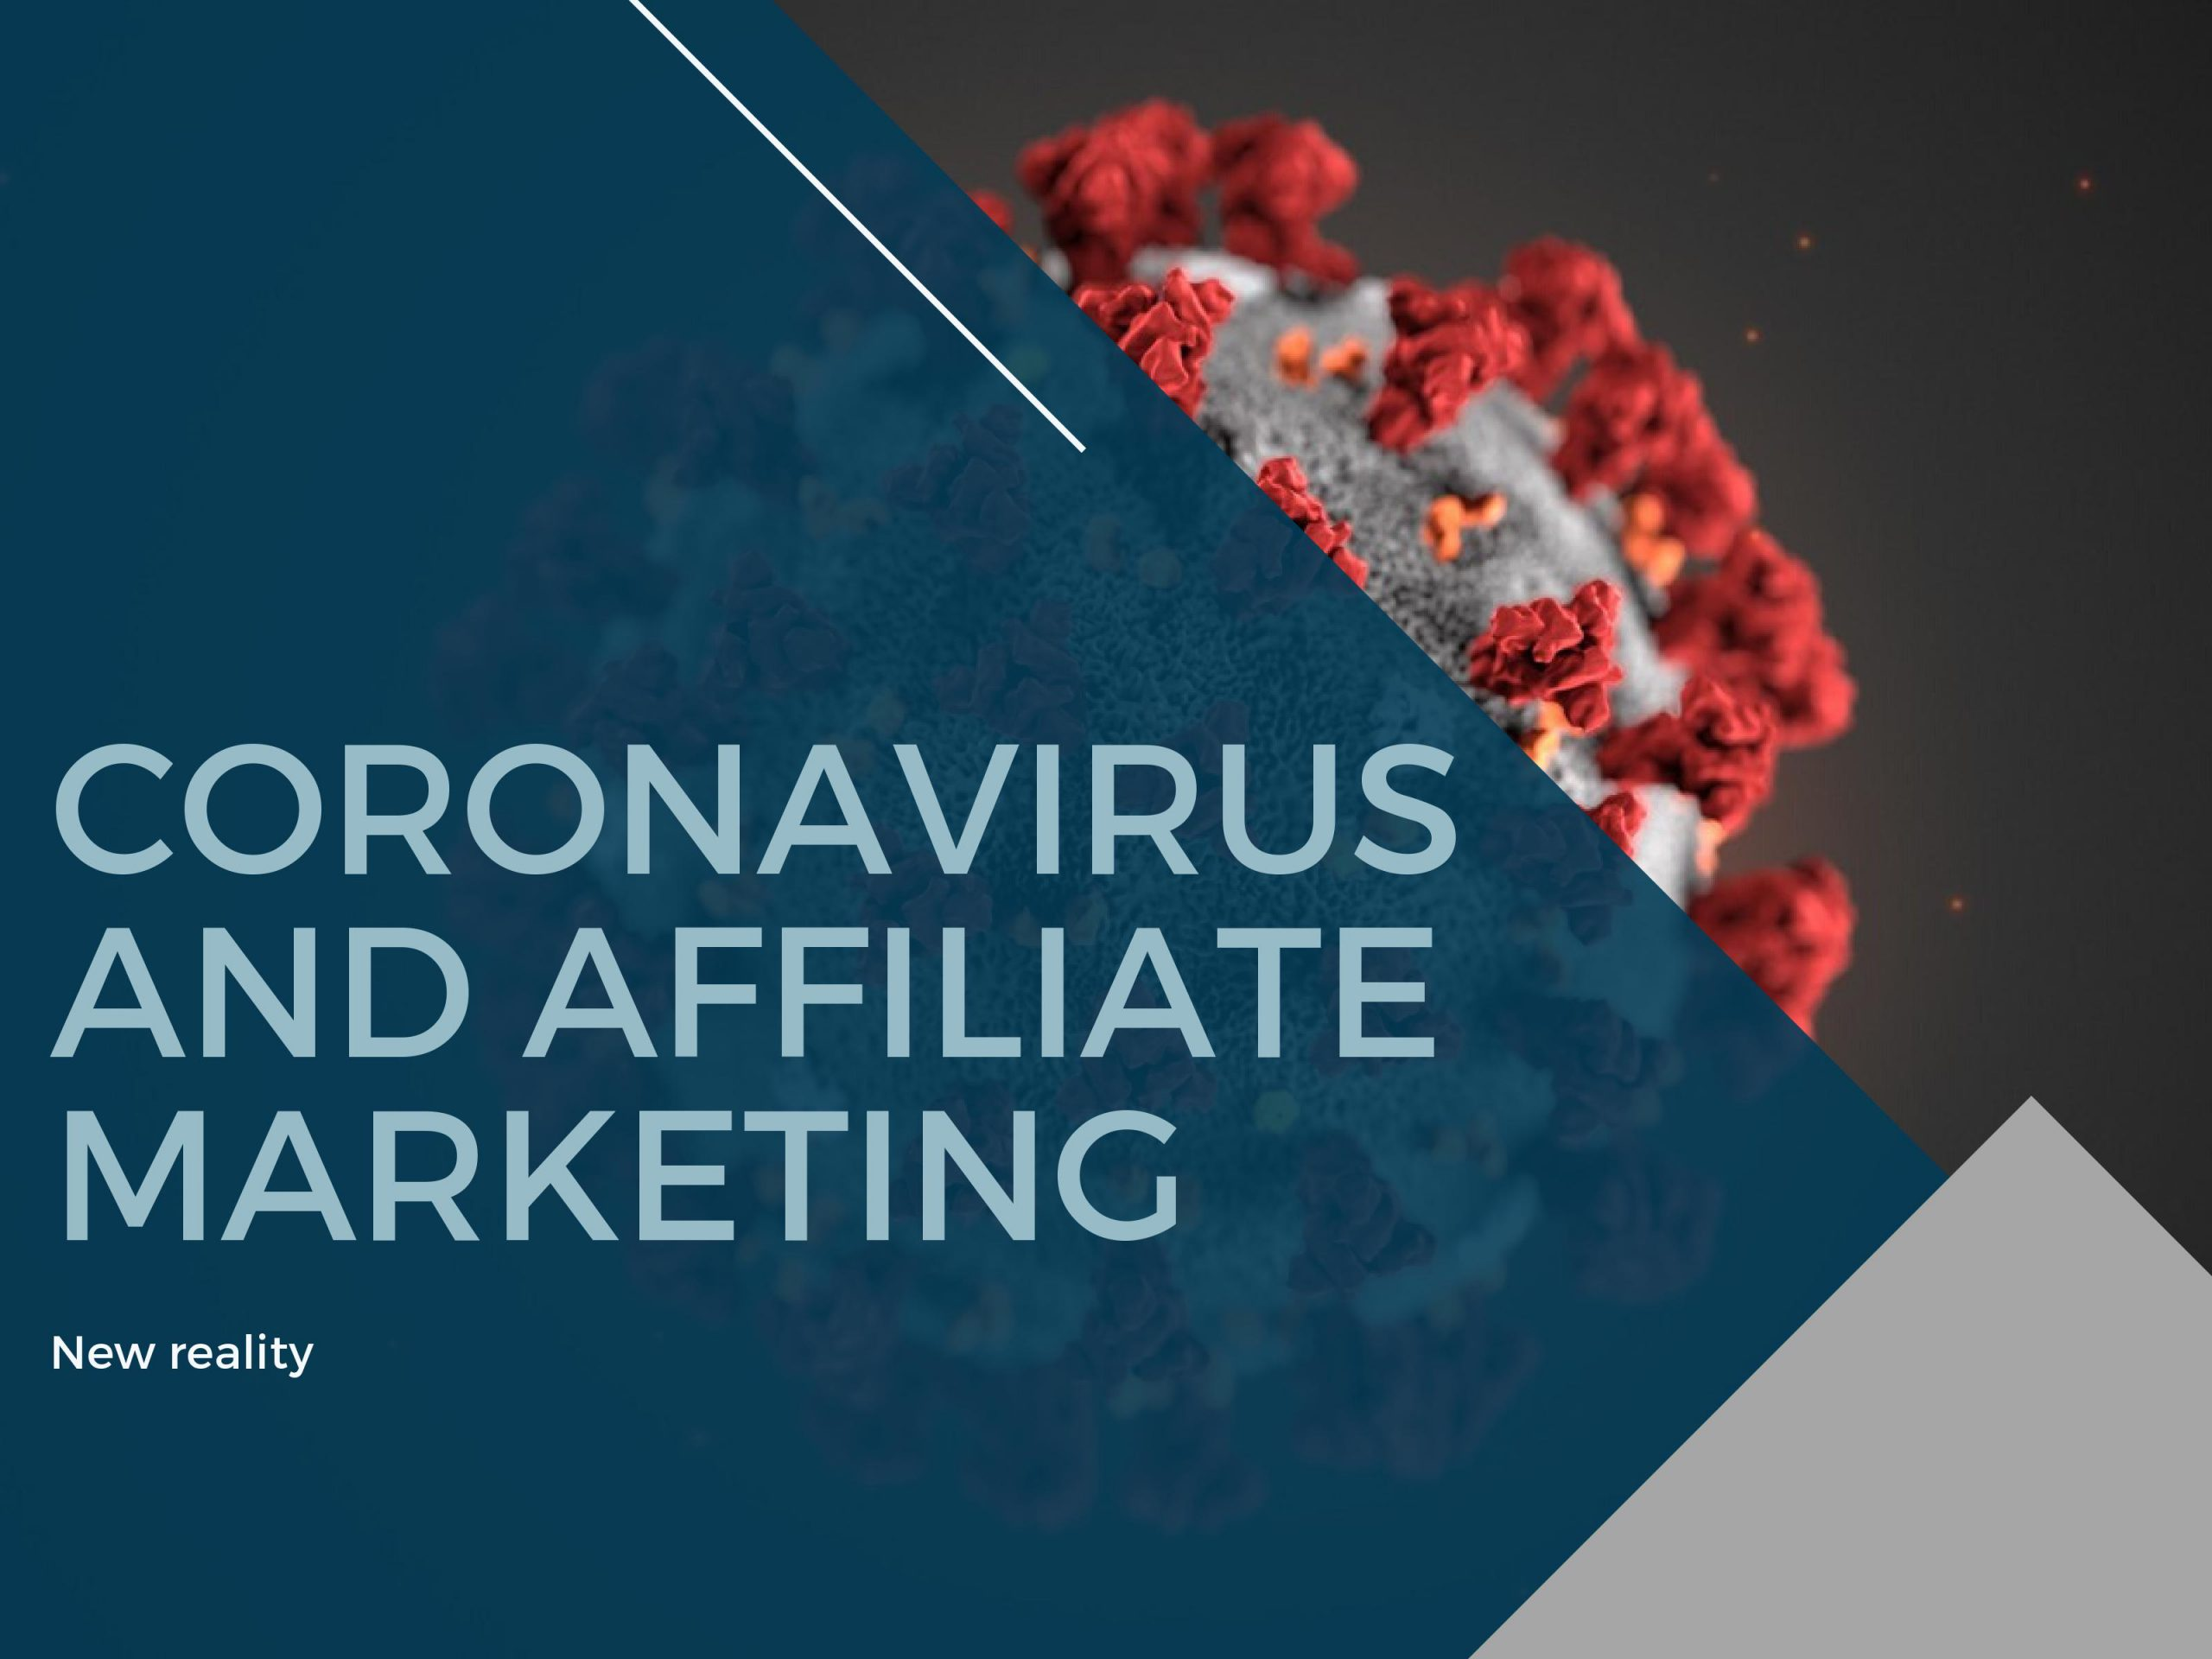 Coronavirus-and-affiliate-marketing.-New-reality